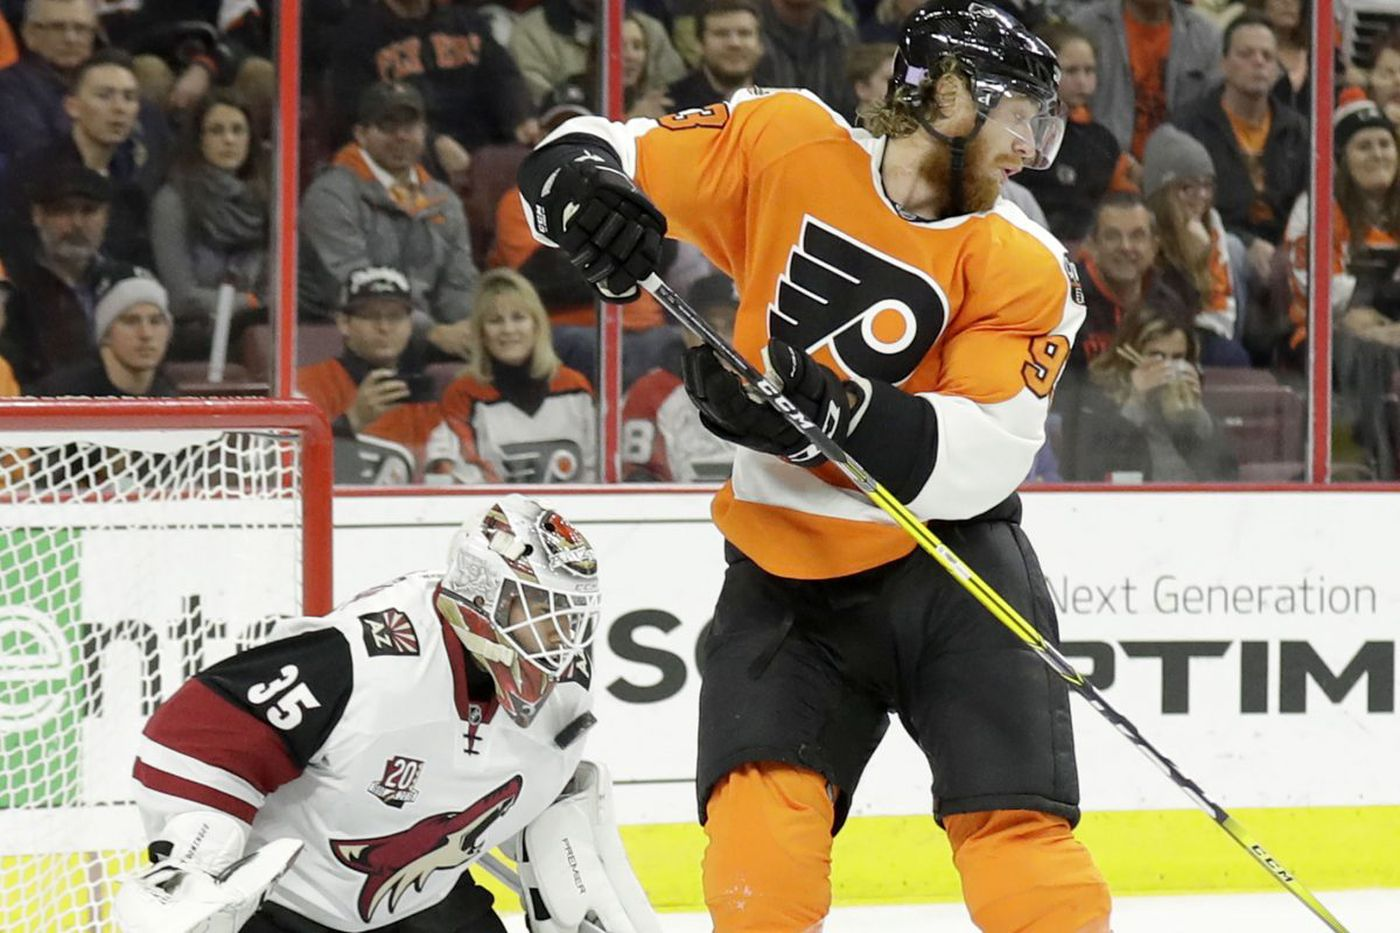 Flyers-Sabres preview: Surging Philly aims for 5th straight win